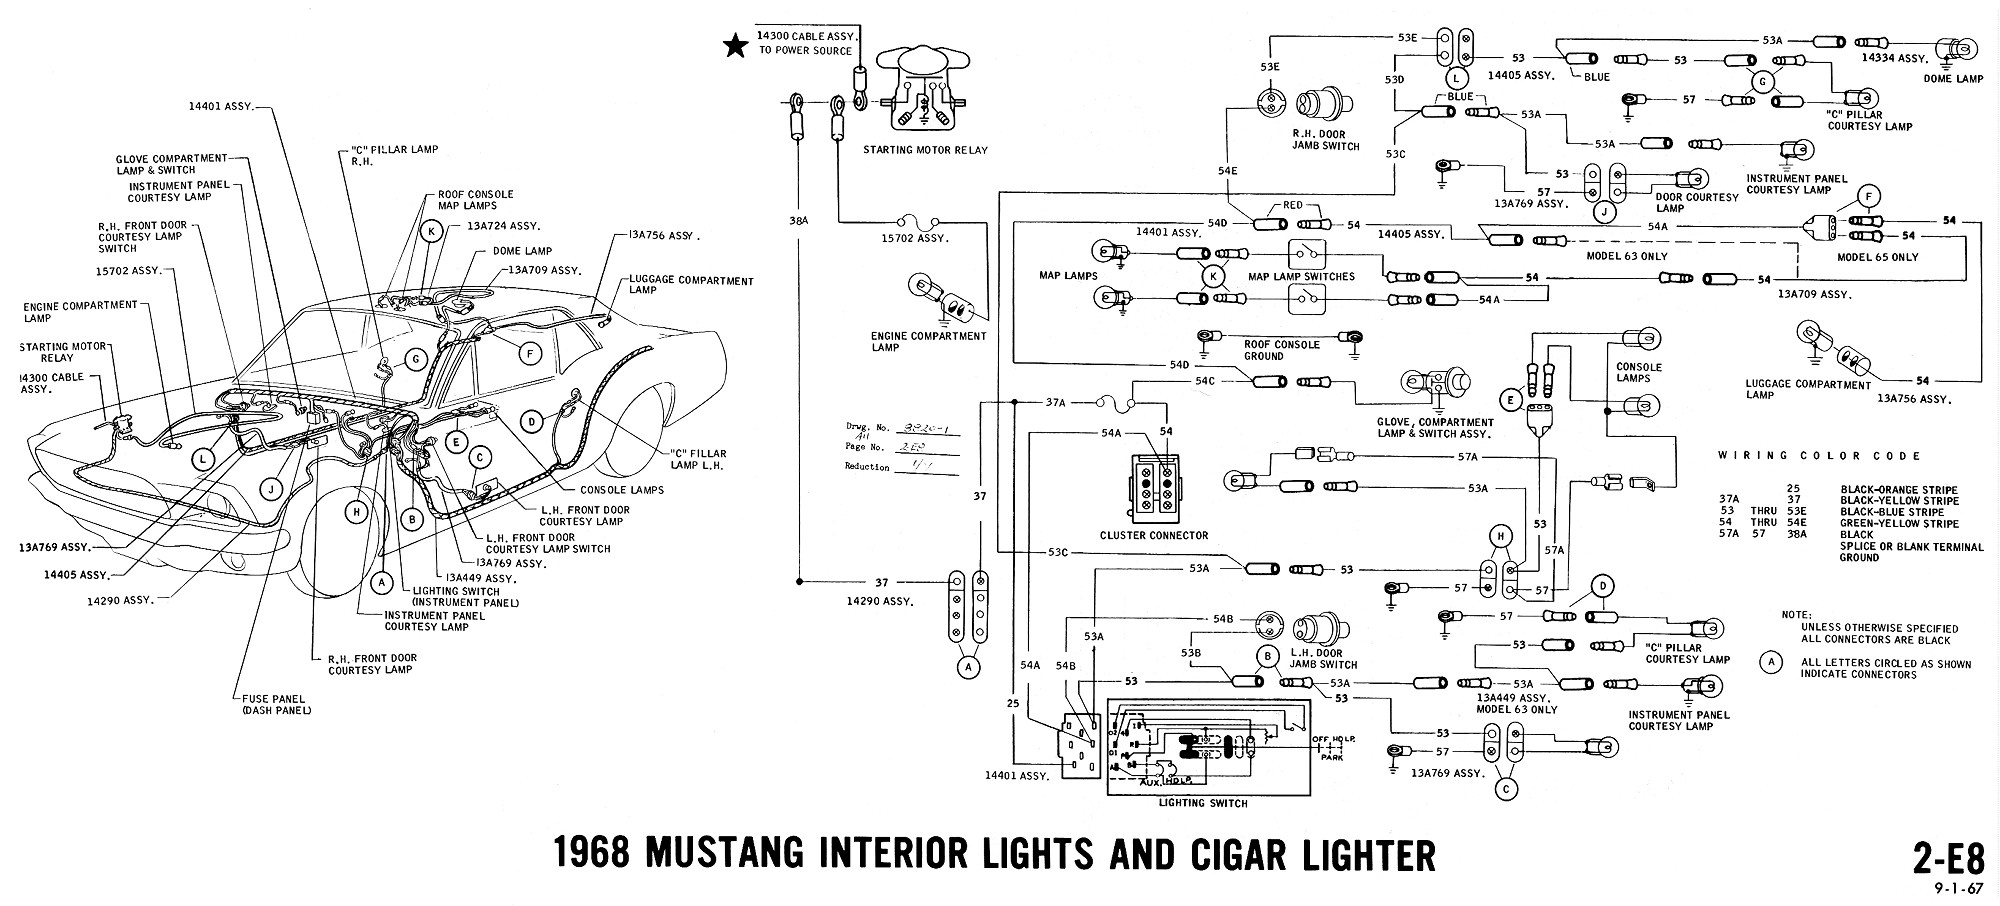 1968 ford mustang wiring diagram original wiring diagram  1968 mustang diagram wiring diagram